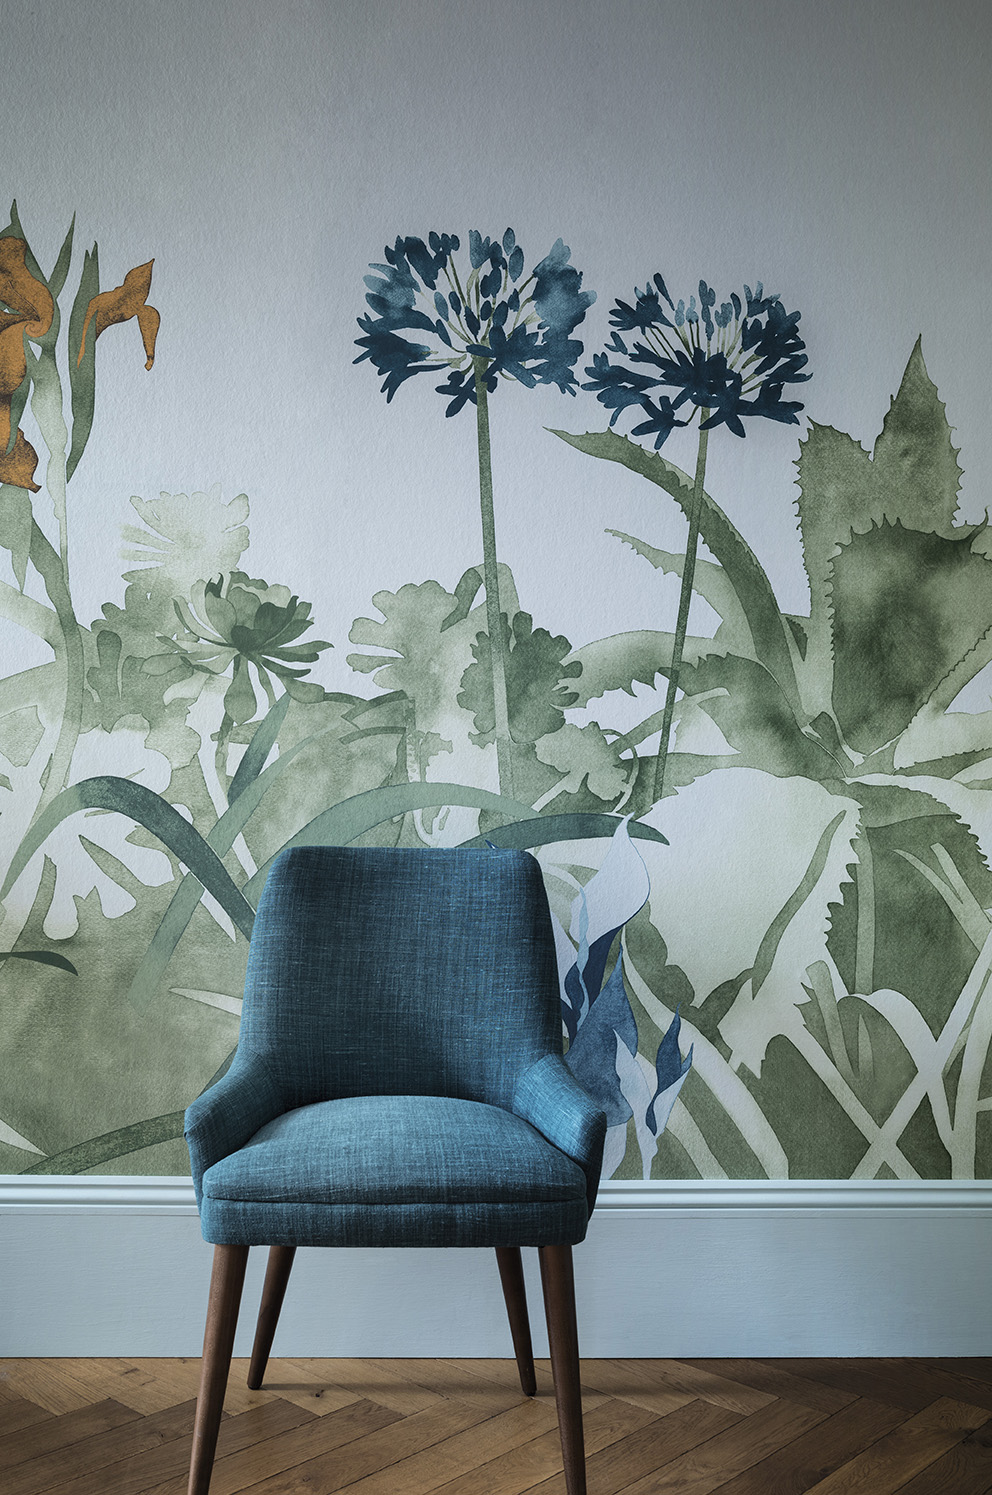 'Tresco' in collaboration with Hugo Dalton by Paint & Paper Library; Wallpaper: Aloe Walk – Glass (Detail); Paint: Glass I 581 in Pure Flat Emulsion, Skirting in Glass III 583 in Architects' Eggshell.